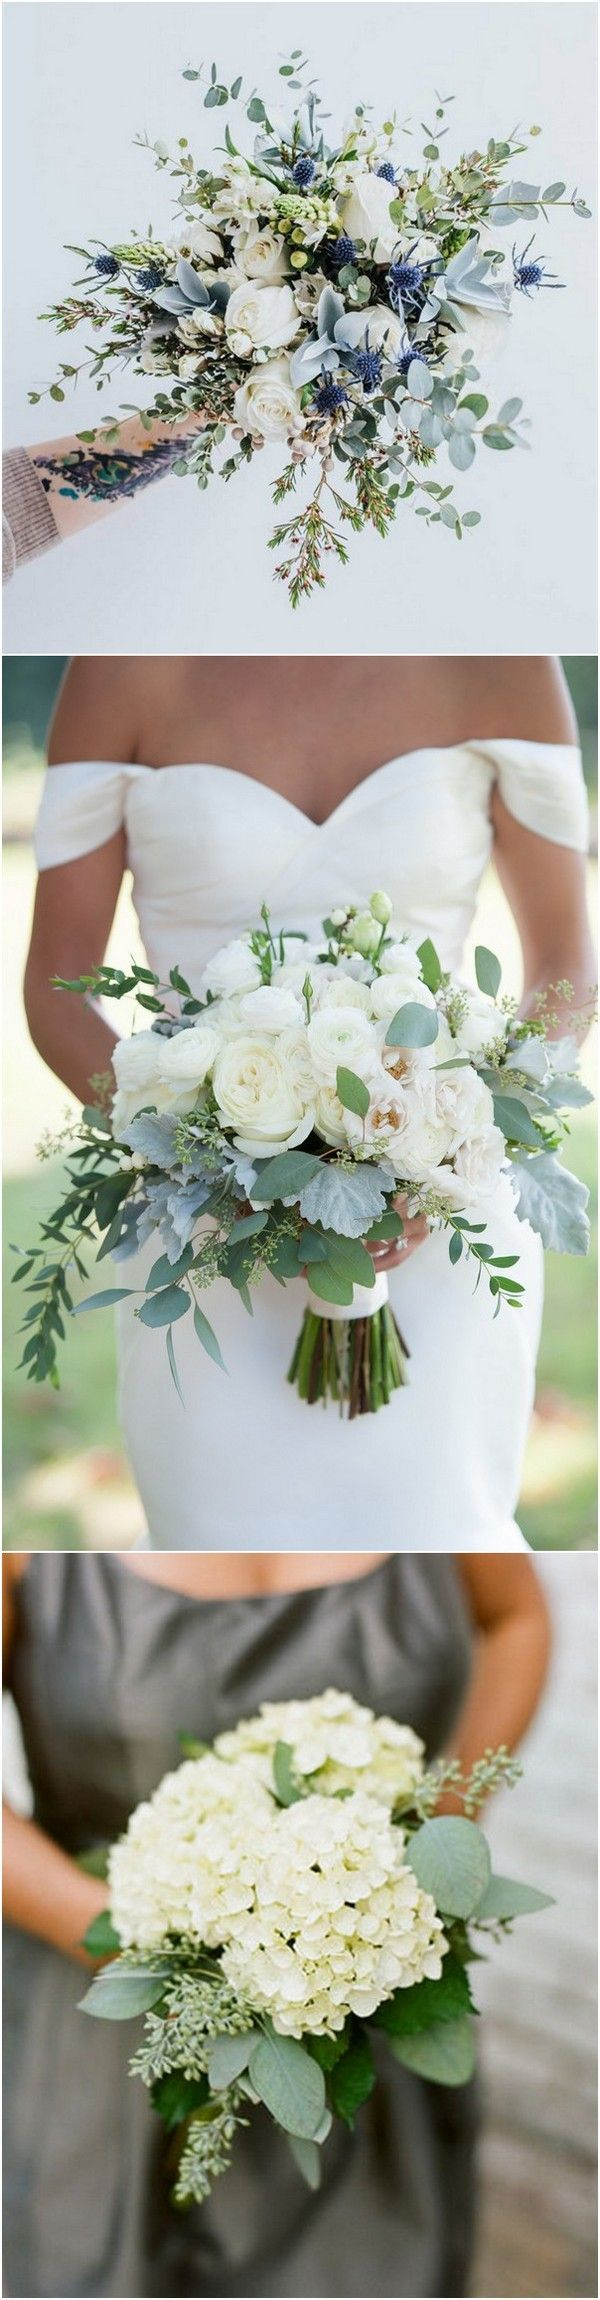 Top 10 White And Green Wedding Bouquet Ideas You Ll Love White